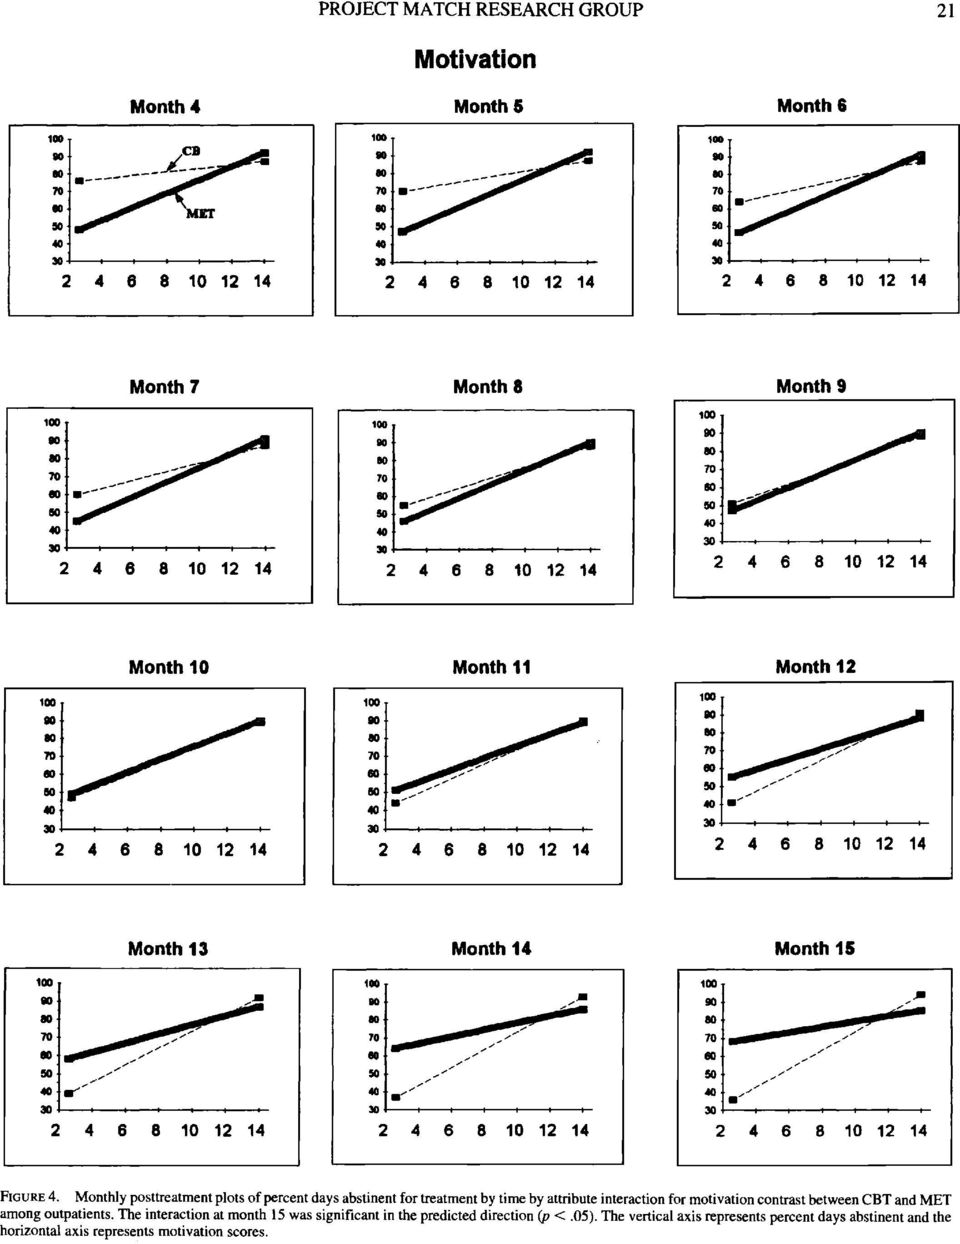 Monthly posttreatment plots of percent days abstinent for treatment by time by attribute interaction for motivation contrast between CBT and MET among